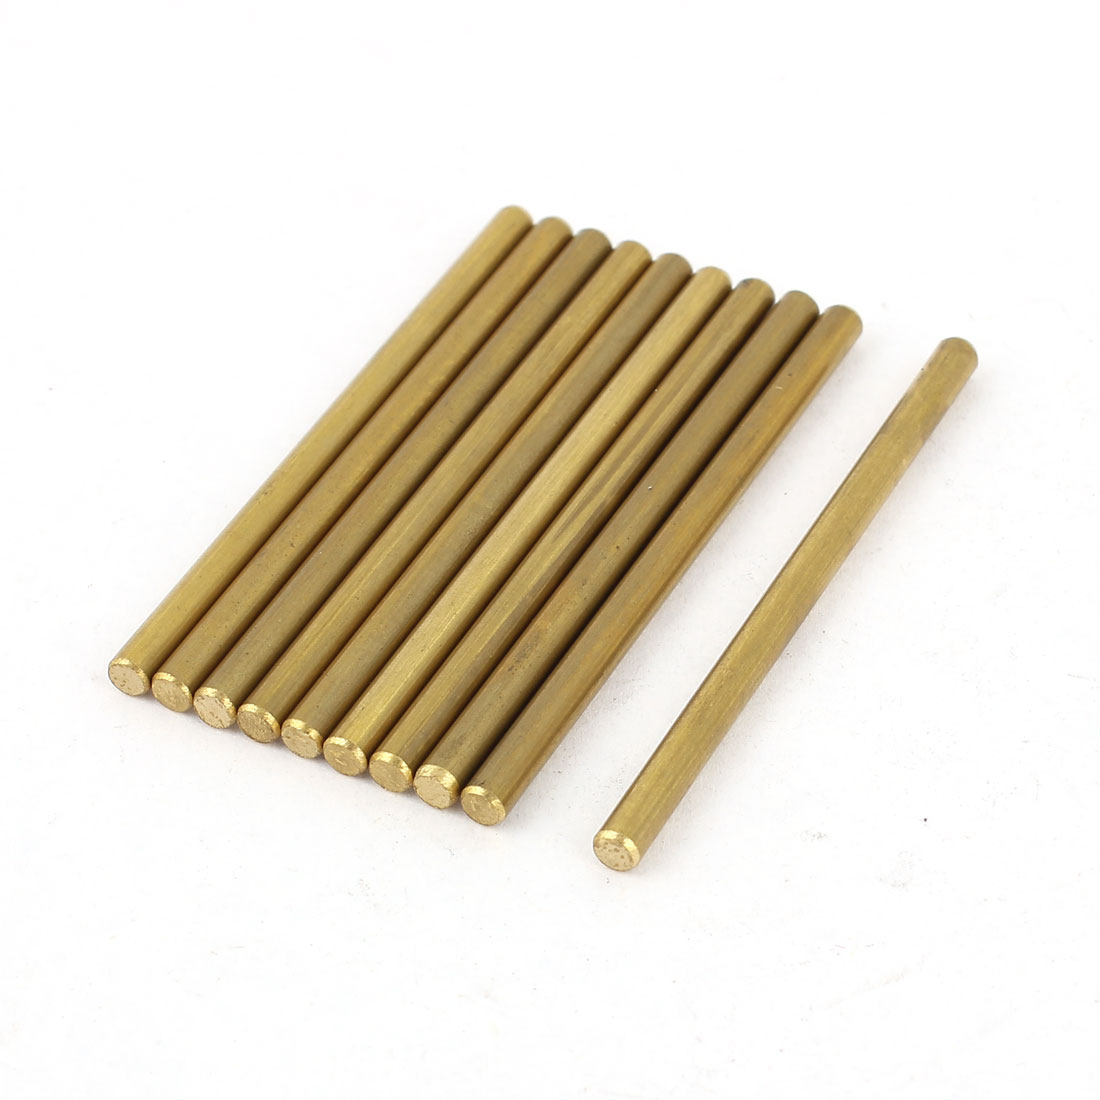 10 Pcs 3mm Dia 50mm Length Brass Solid Round Rod Bar for DIY RC Car